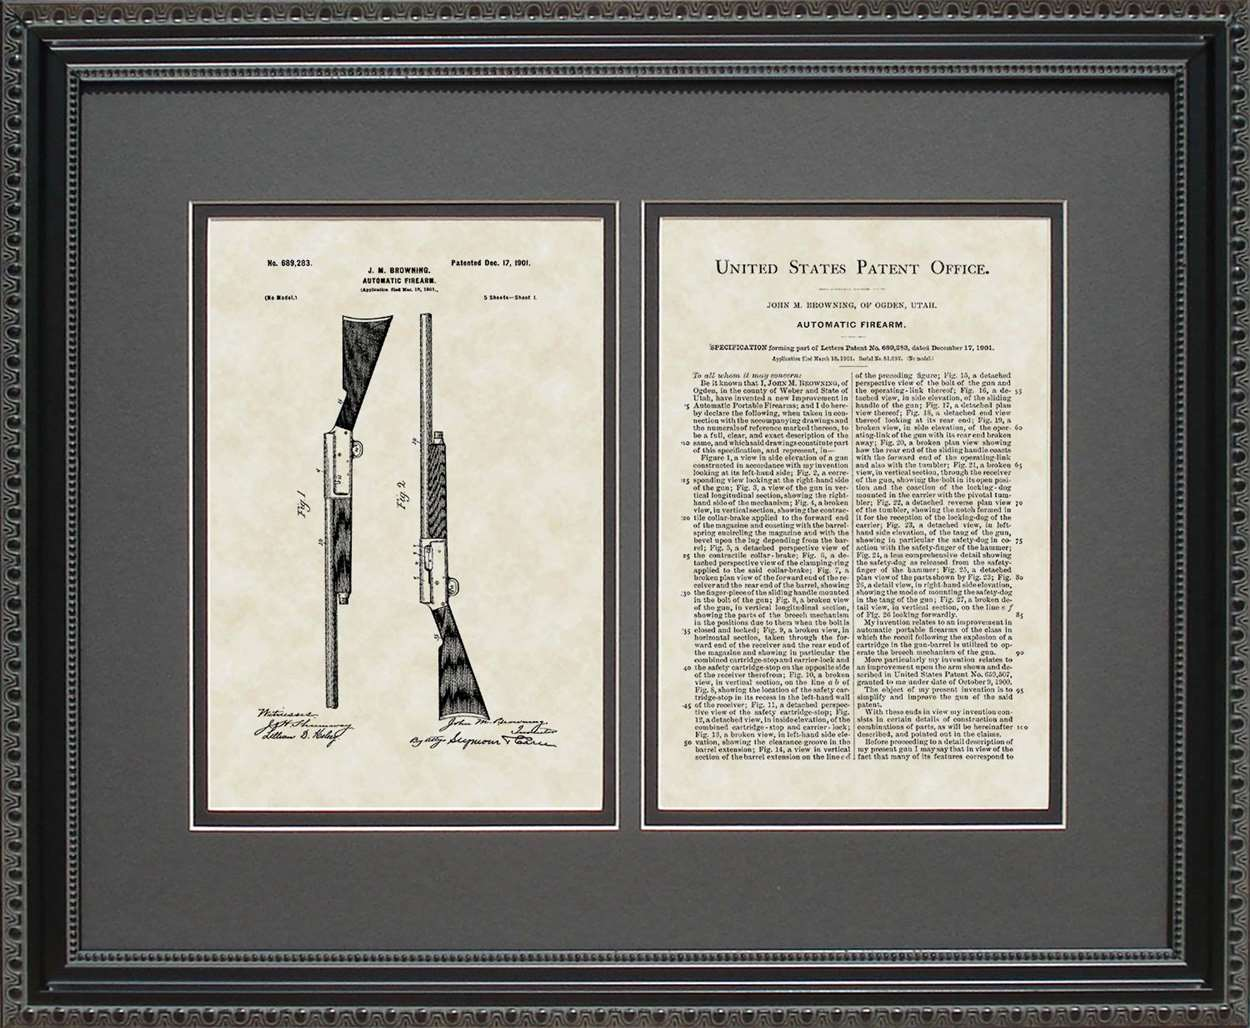 Auto 5 Shotgun Patent, Art & Copy, Browning, 1901, 16x20